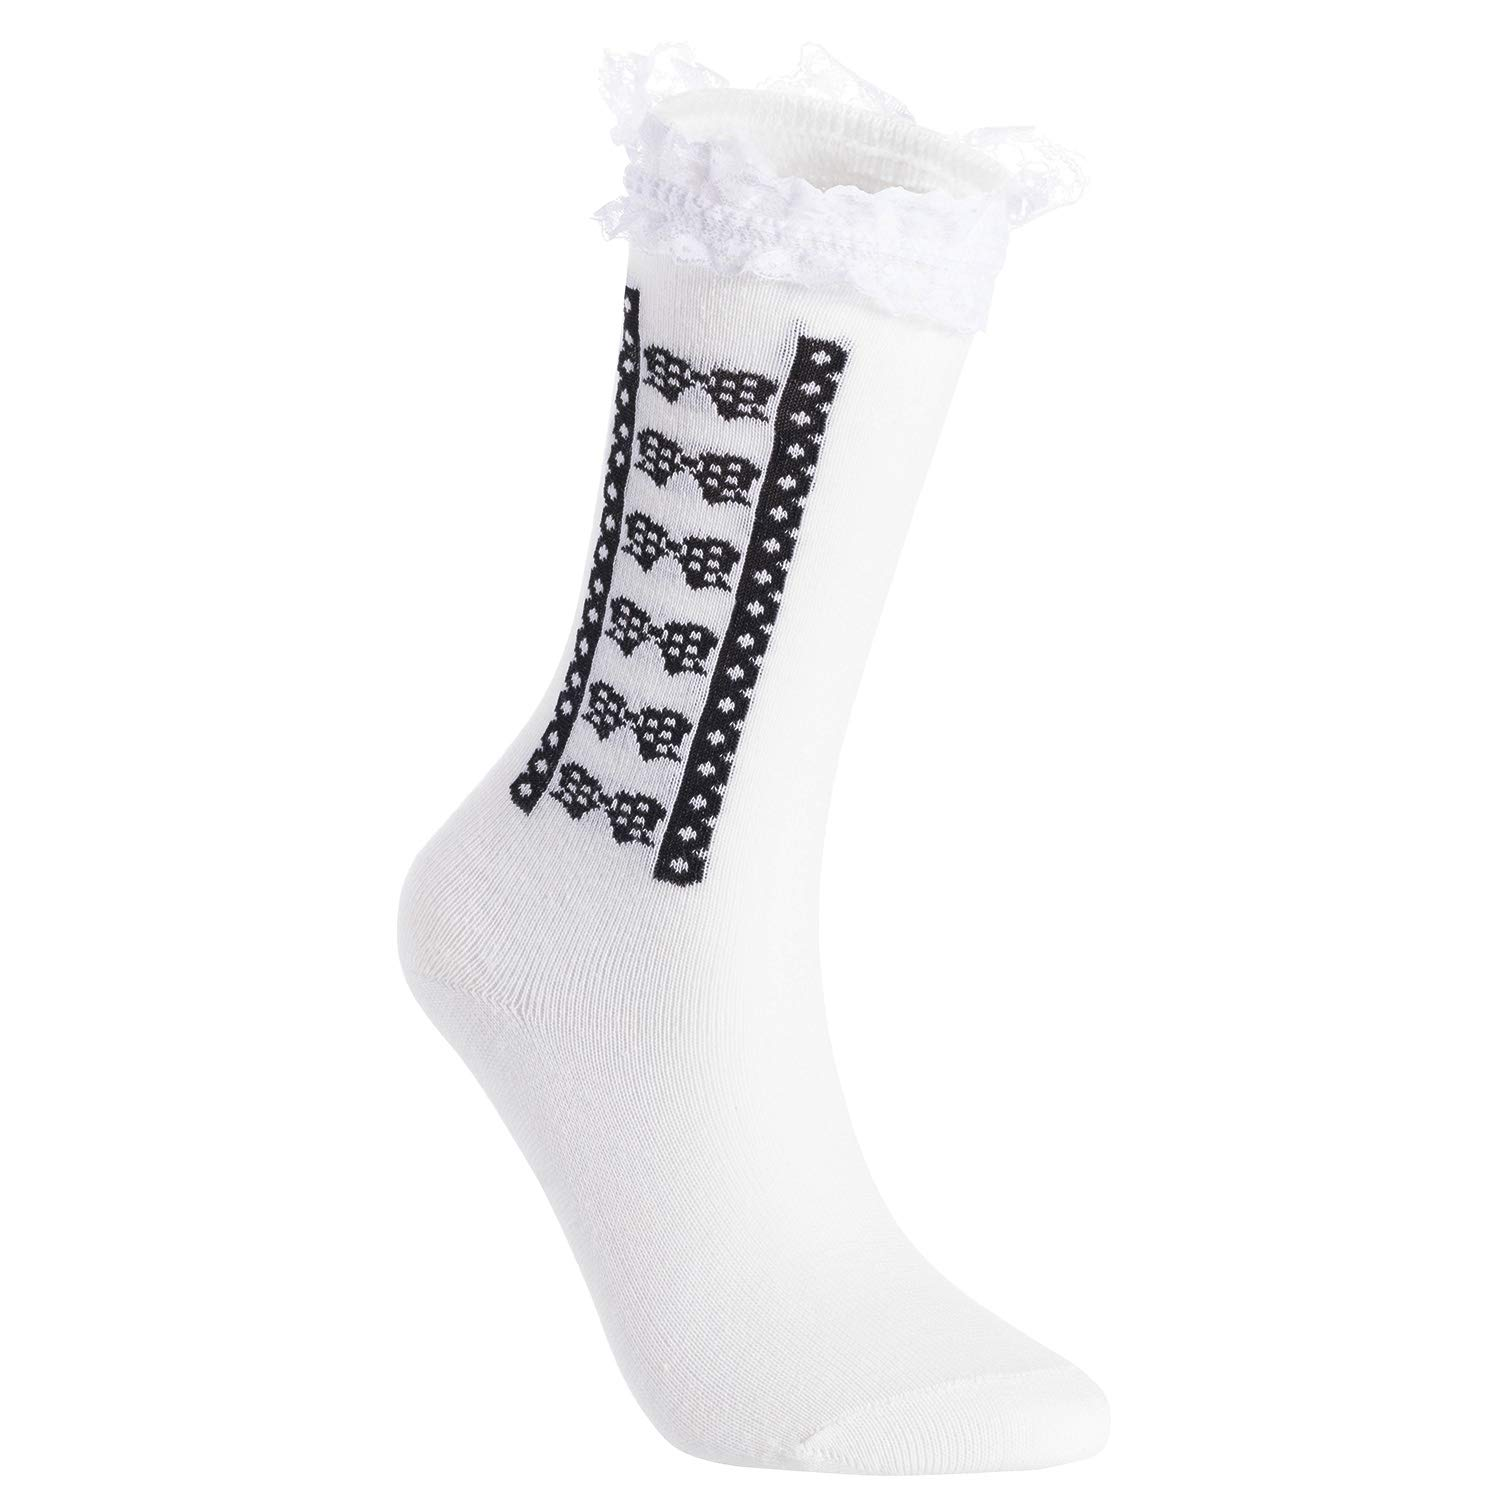 2Y-10Y Lian LifeStyle Girls 8 Pairs Pack Laced Knee High Cotton Socks 2 Sizes